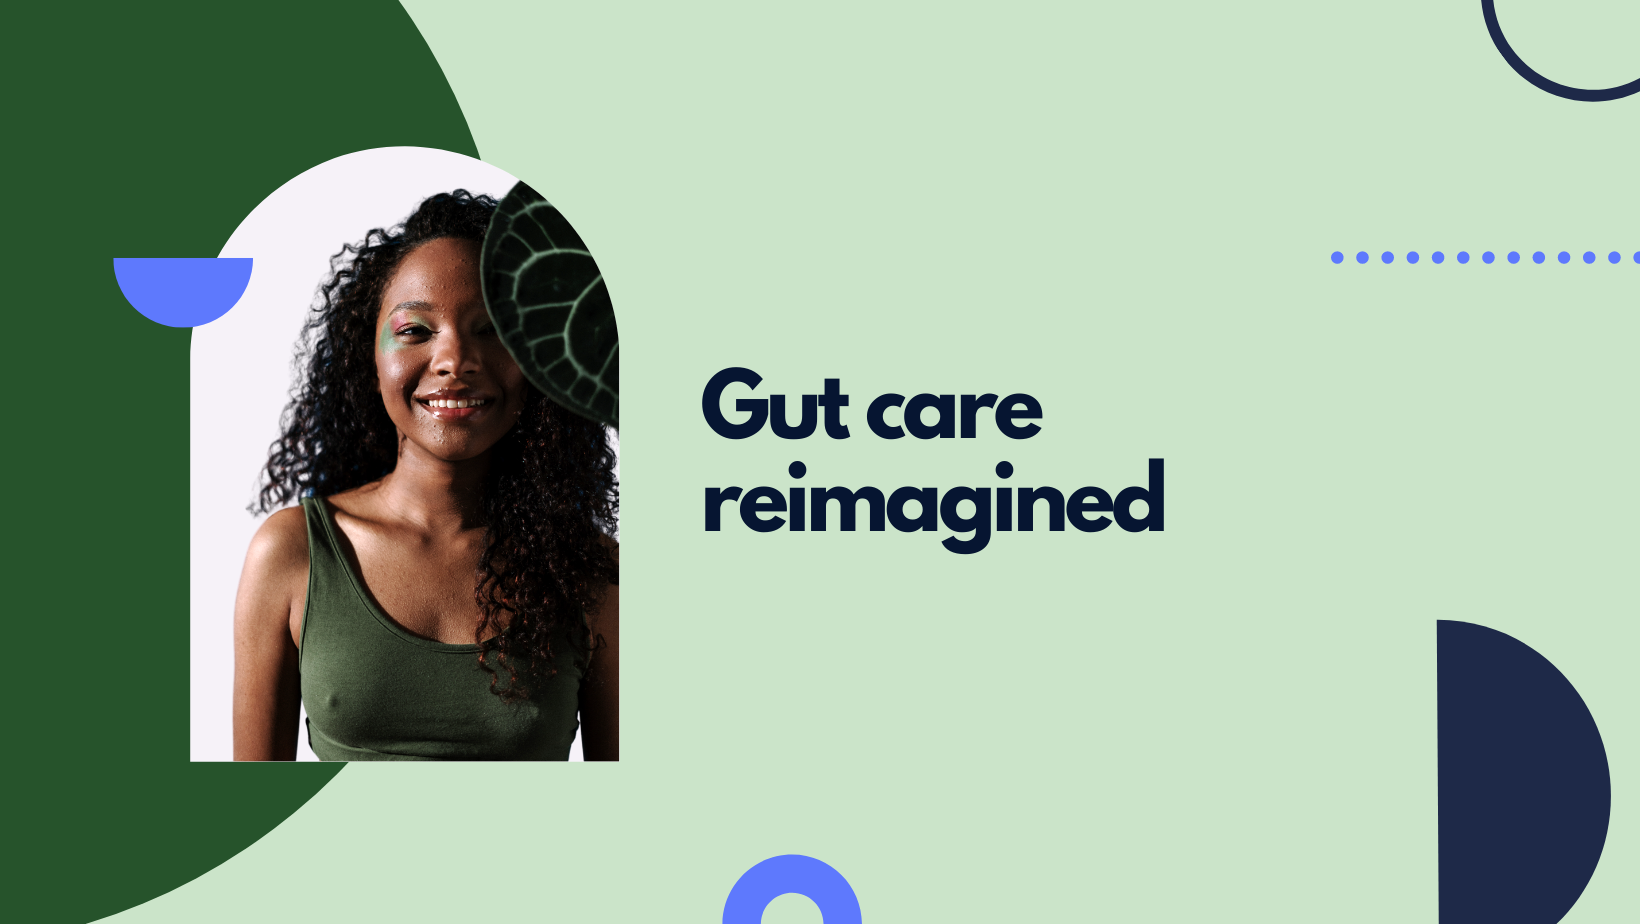 Reimagining care for gut health